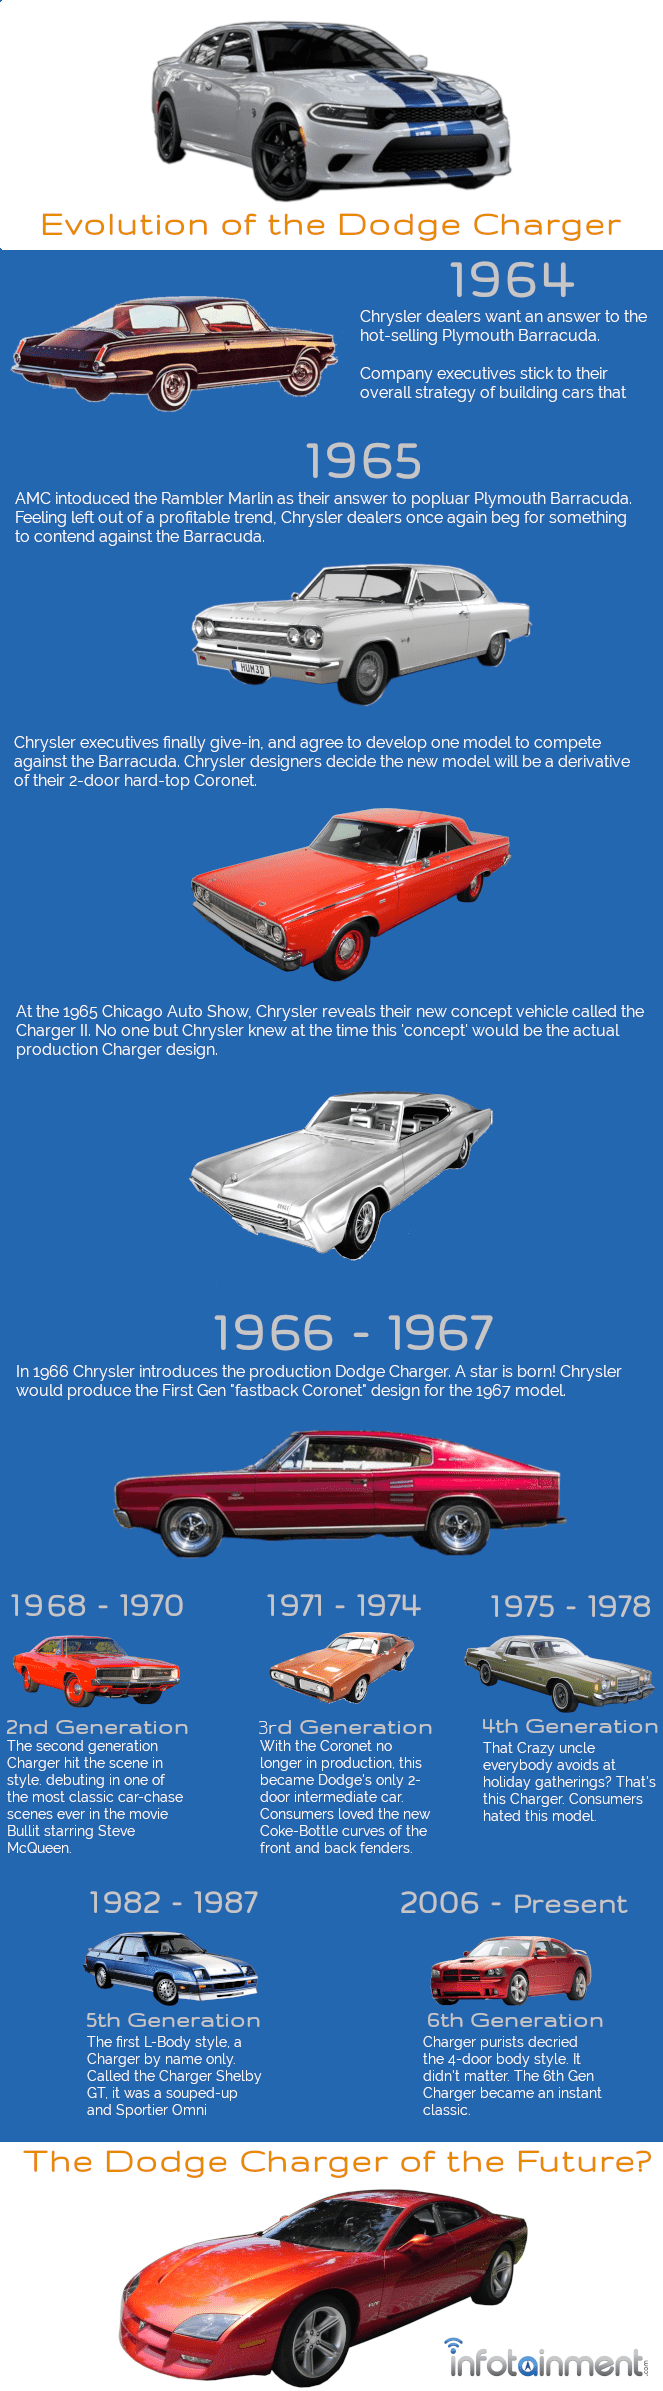 The Evolution of the Dodge Charger in Pictures - Infotainment.com